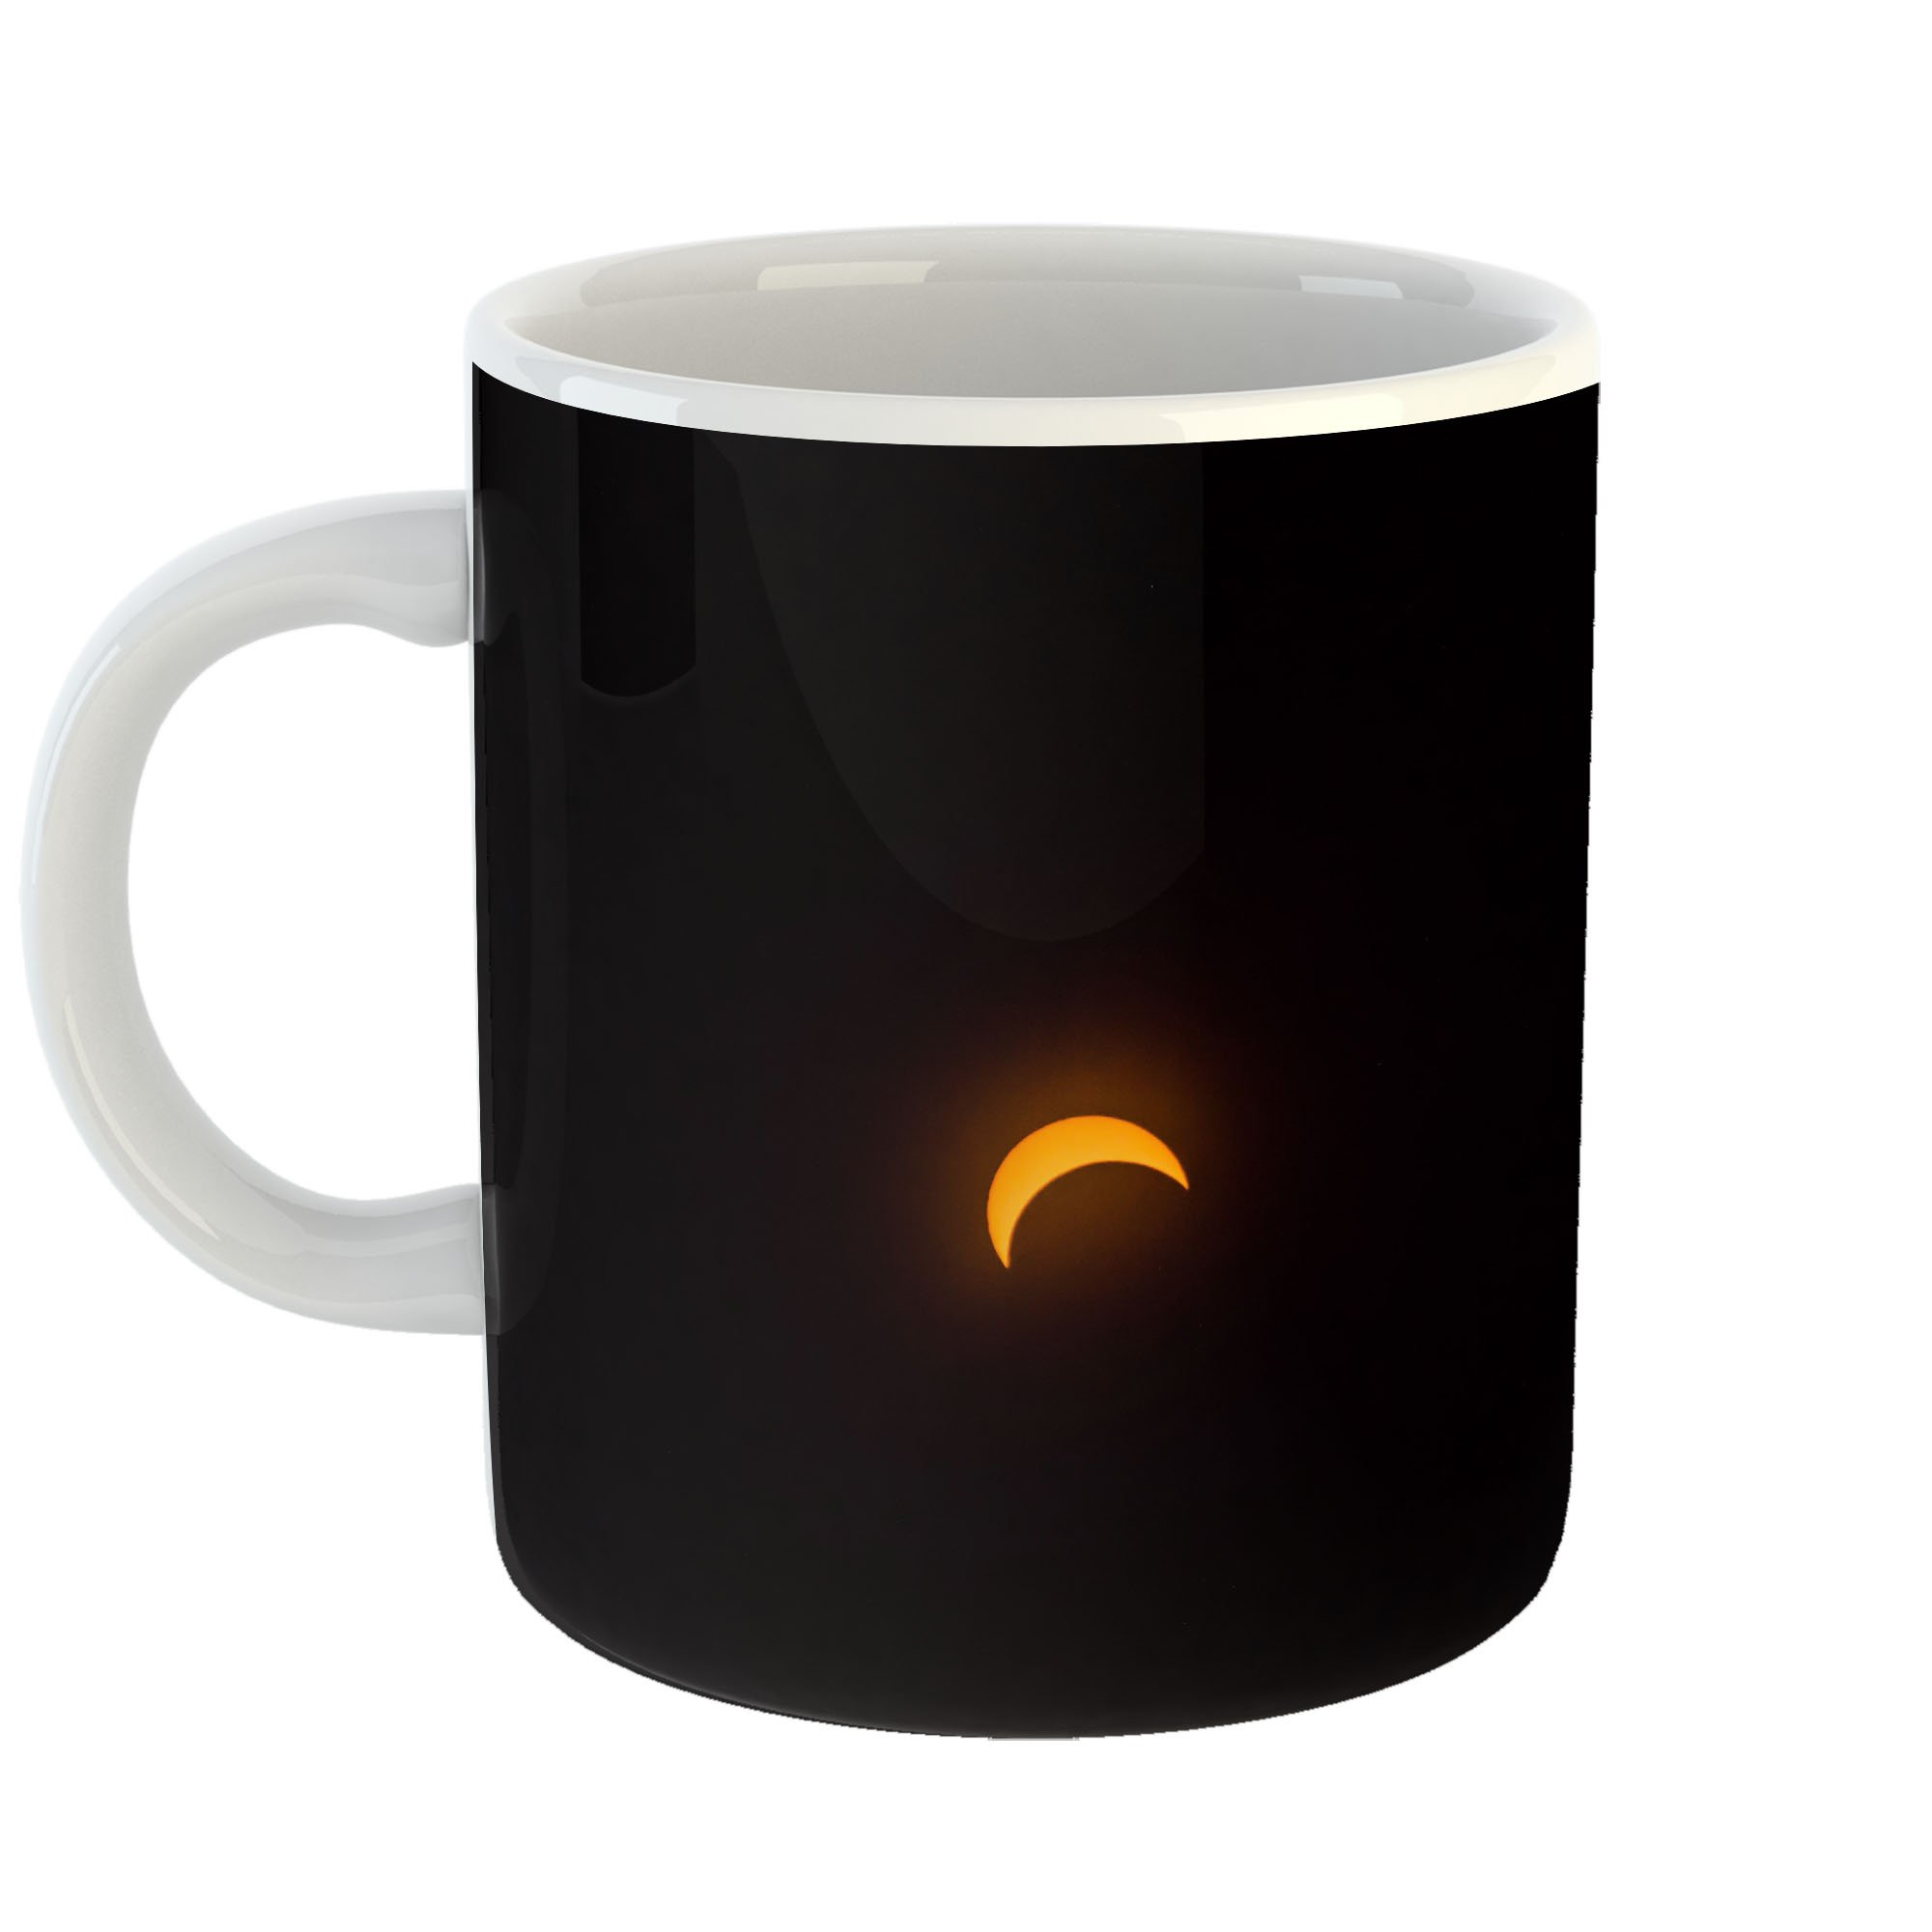 Westlake Art - Solar Crescent - 11oz Coffee Cup Mug - Modern Picture Photography Artwork Home Office Birthday Gift - 11 Ounce (4D40-3A85E)